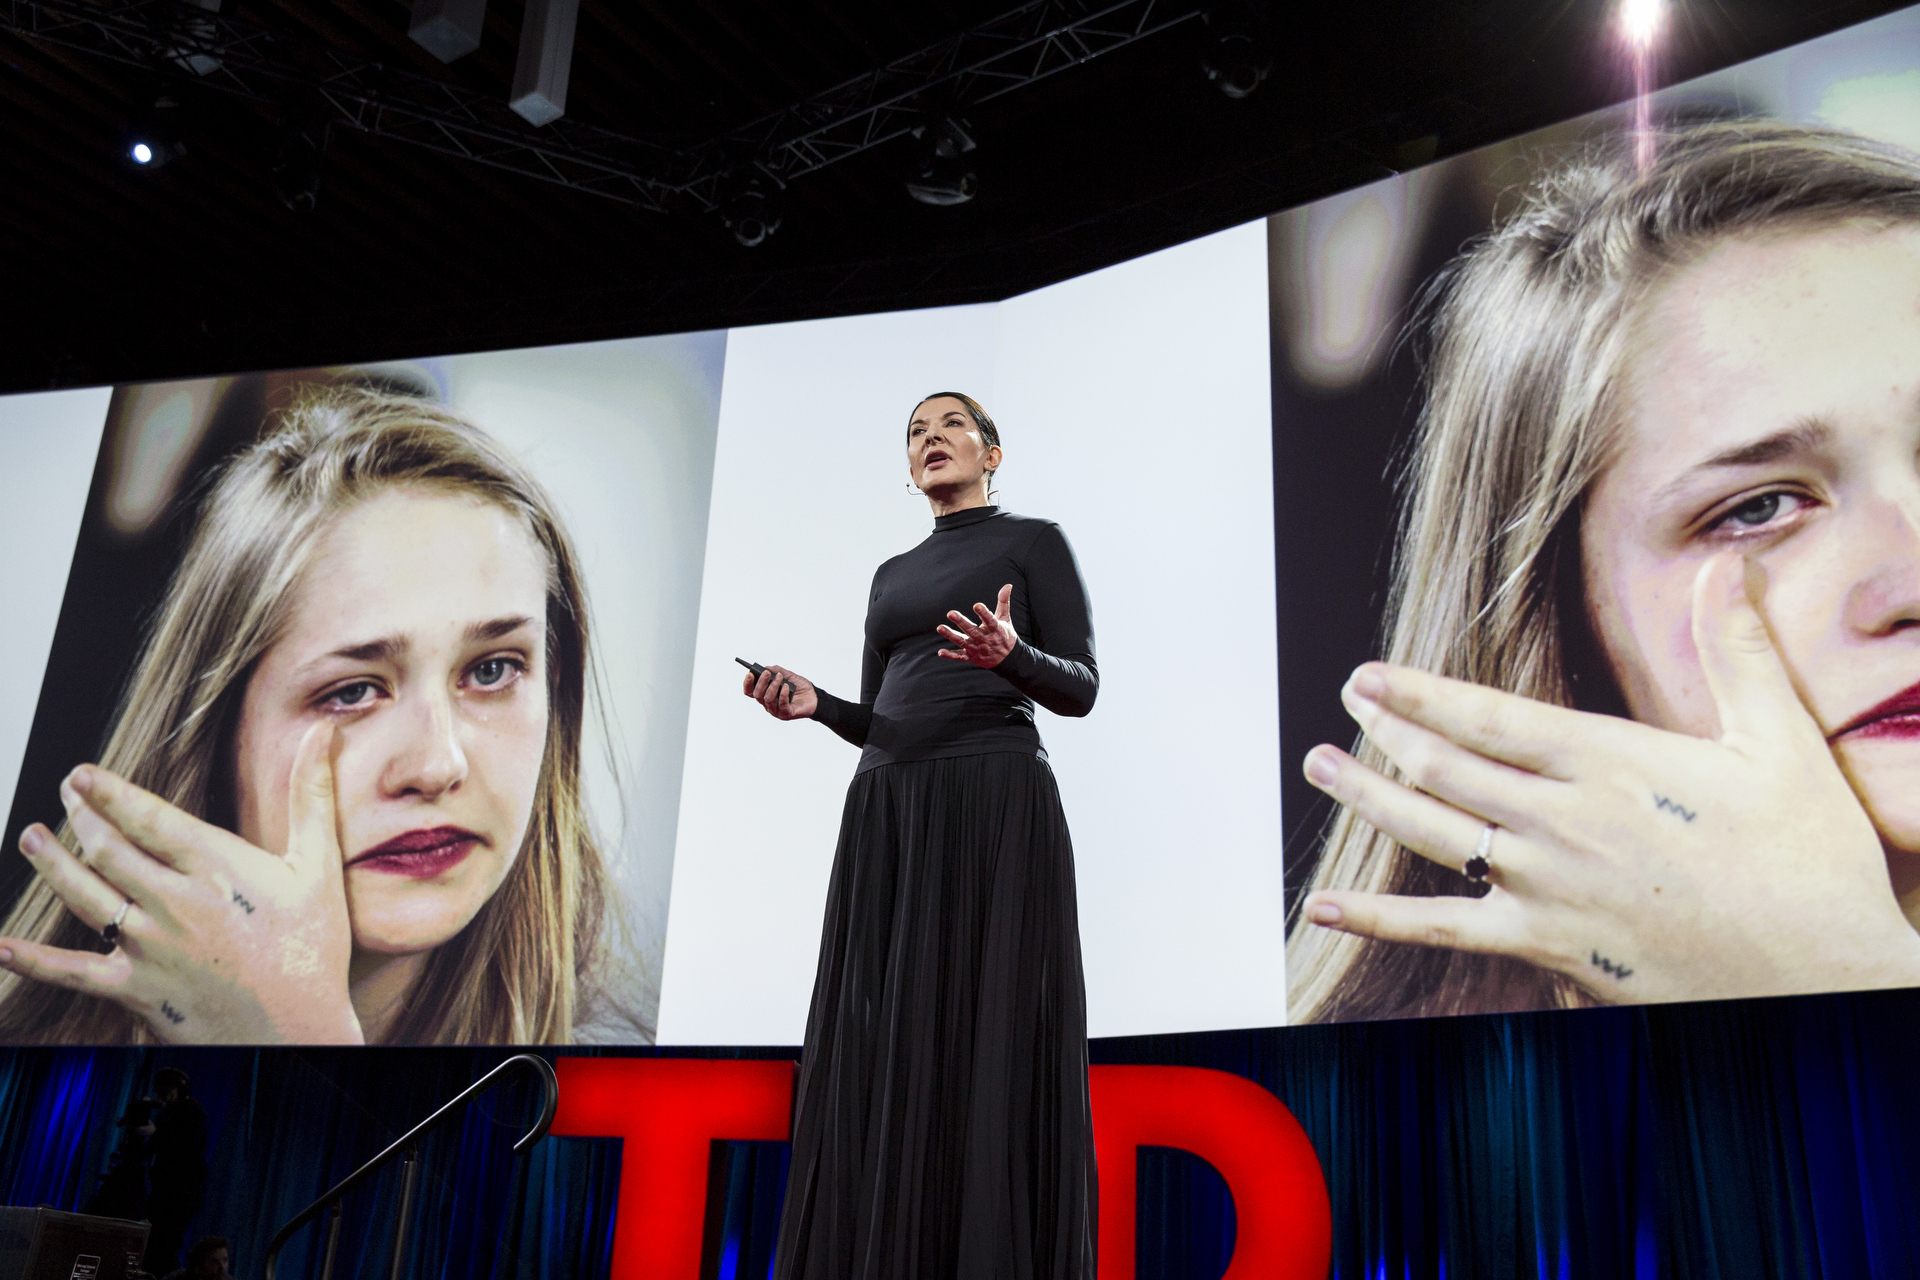 Marina Abramovic speaks at TED2015 - Truth and Dare, Session 1. Photo: Bret Hartman/TED